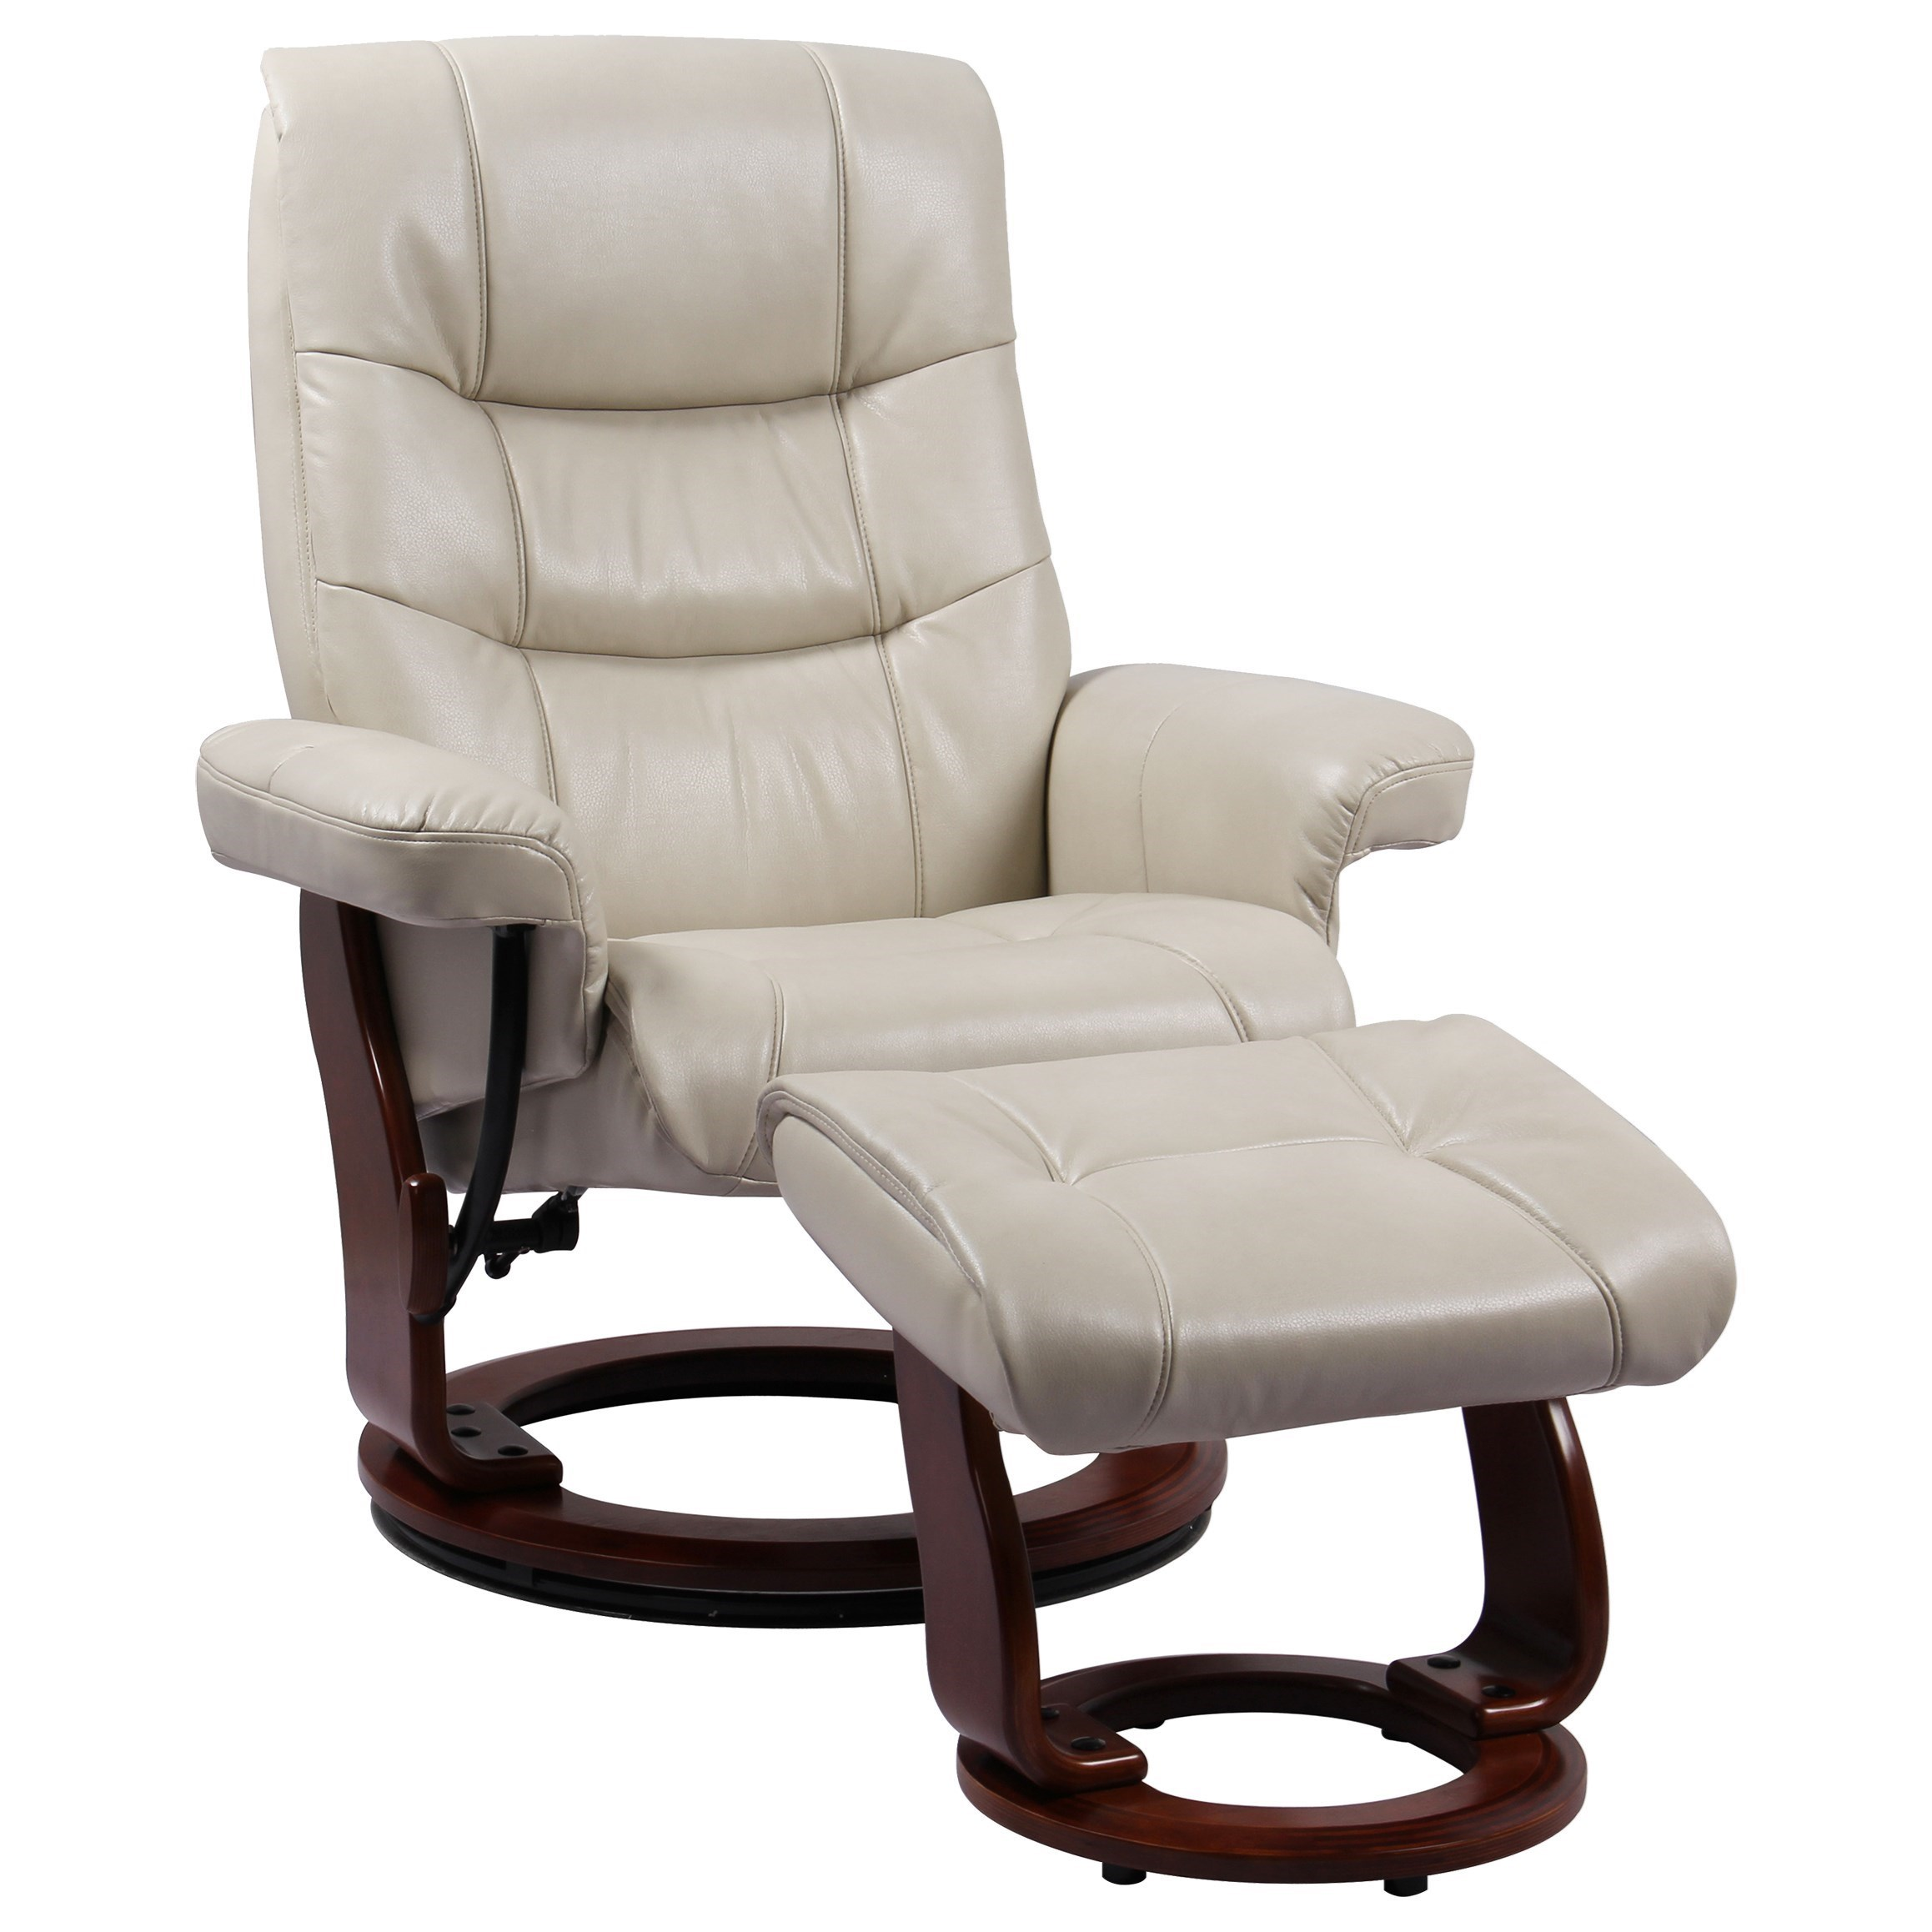 benchmaster rosa ii reclining chair and ottoman  item number kgp. benchmaster rosa ii reclining chair with storage ottoman  wayside